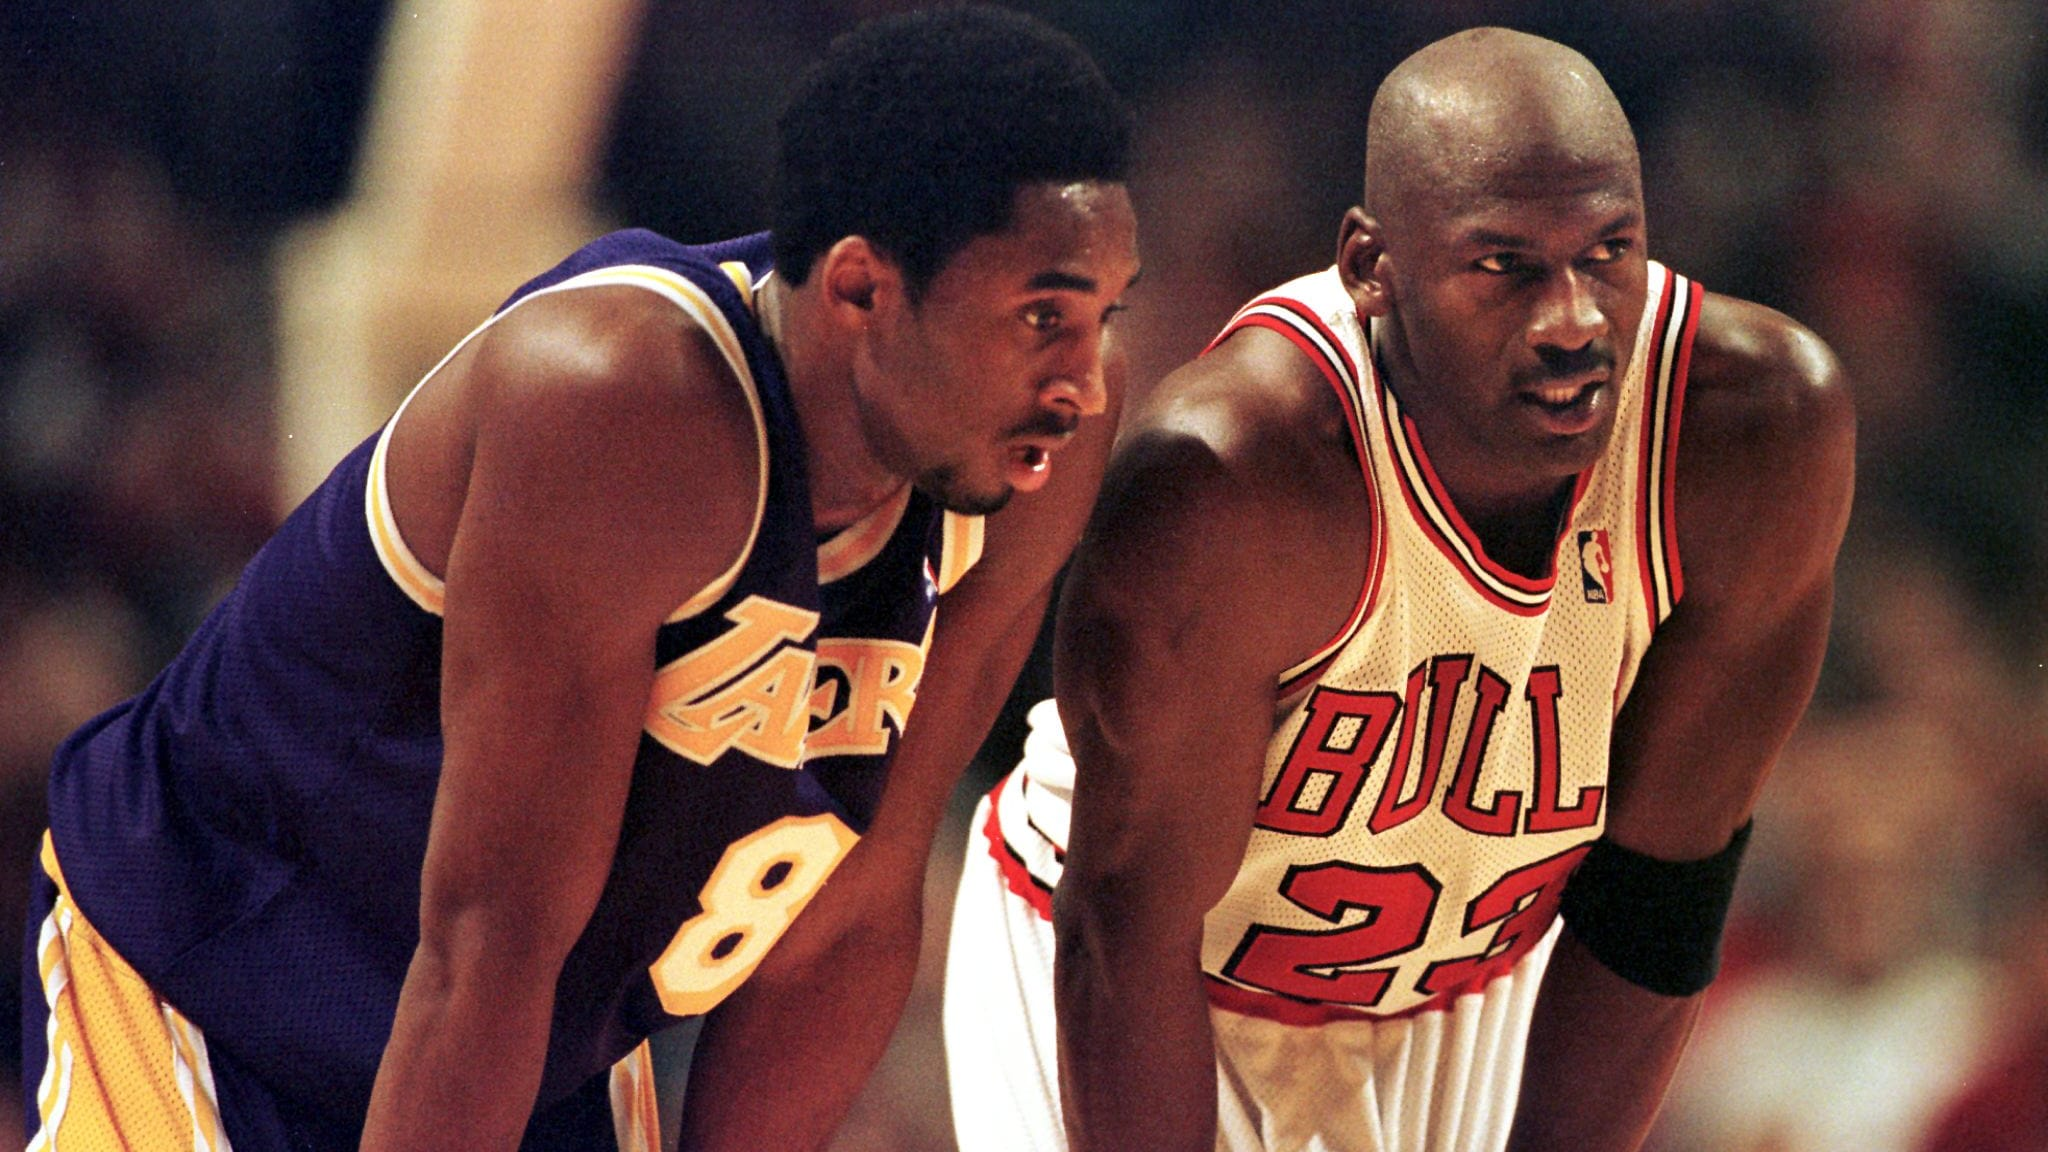 CHICAGO, UNITED STATES:  Los Angeles Lakers guard Kobe Bryant(L) and Chicago Bulls guard Michael Jordan(R) talk during a free-throw attempt during the fourth quarter 17 December at the United Center in Chicago. Bryant, who is 19 and bypassed college basketball to play in the NBA, scored a team-high 33 points off the bench, and Jordan scored a team-high 36 points. The Bulls defeated the Lakers 104-83.  AFP PHOTO  VINCENT LAFORET (Photo credit should read VINCENT LAFORET/AFP/Getty Images)